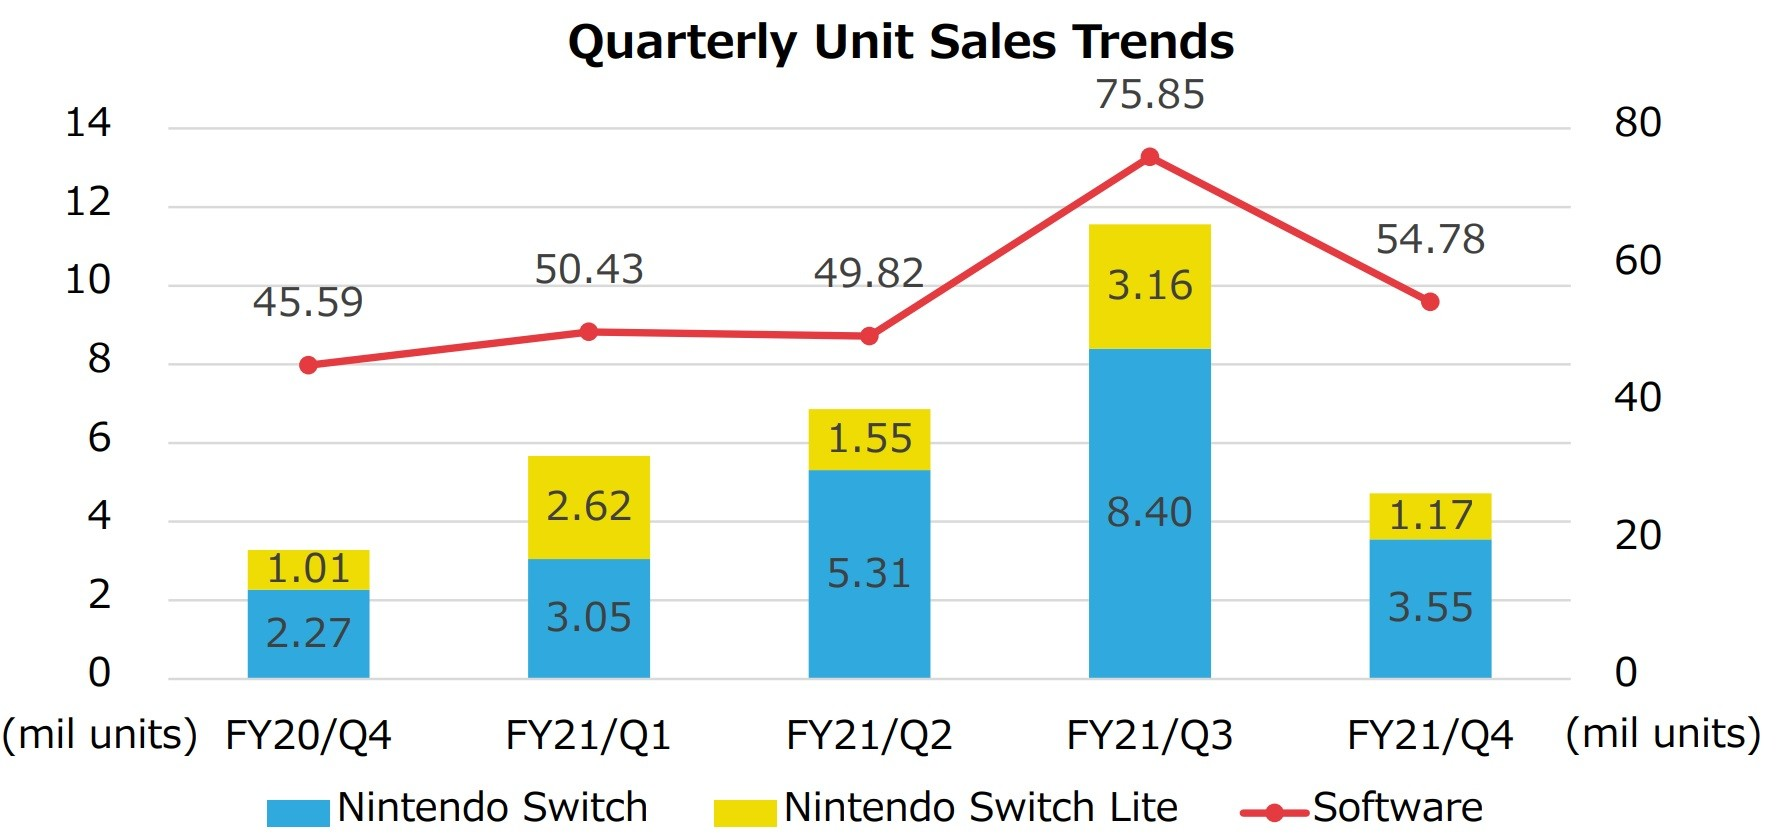 Quarterly sales trends for Nintendo Switch from Q4 2020 to to Q4 2021